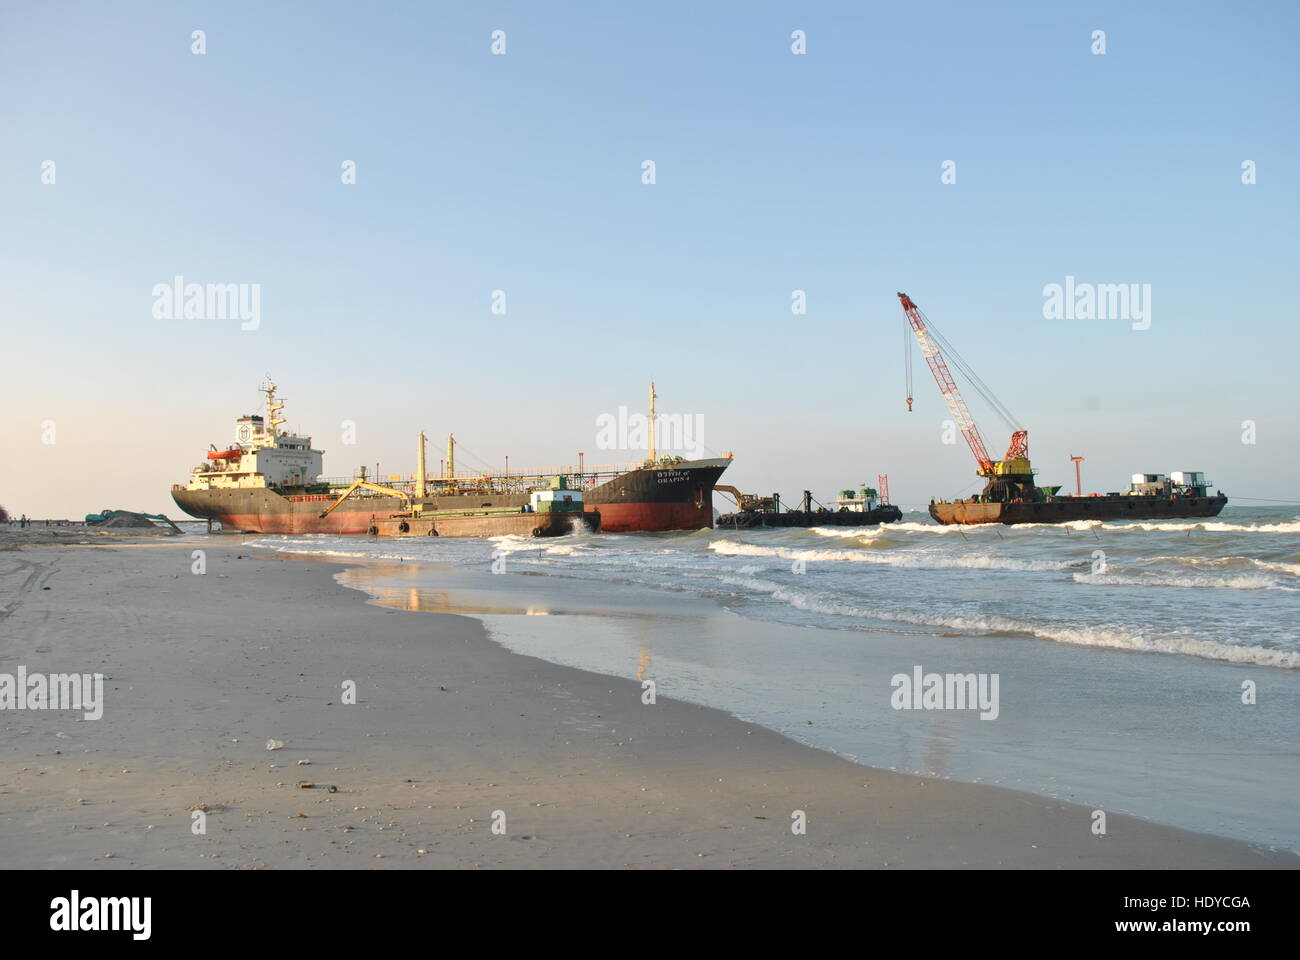 Ran aground oil tanker in Thailand - Stock Image